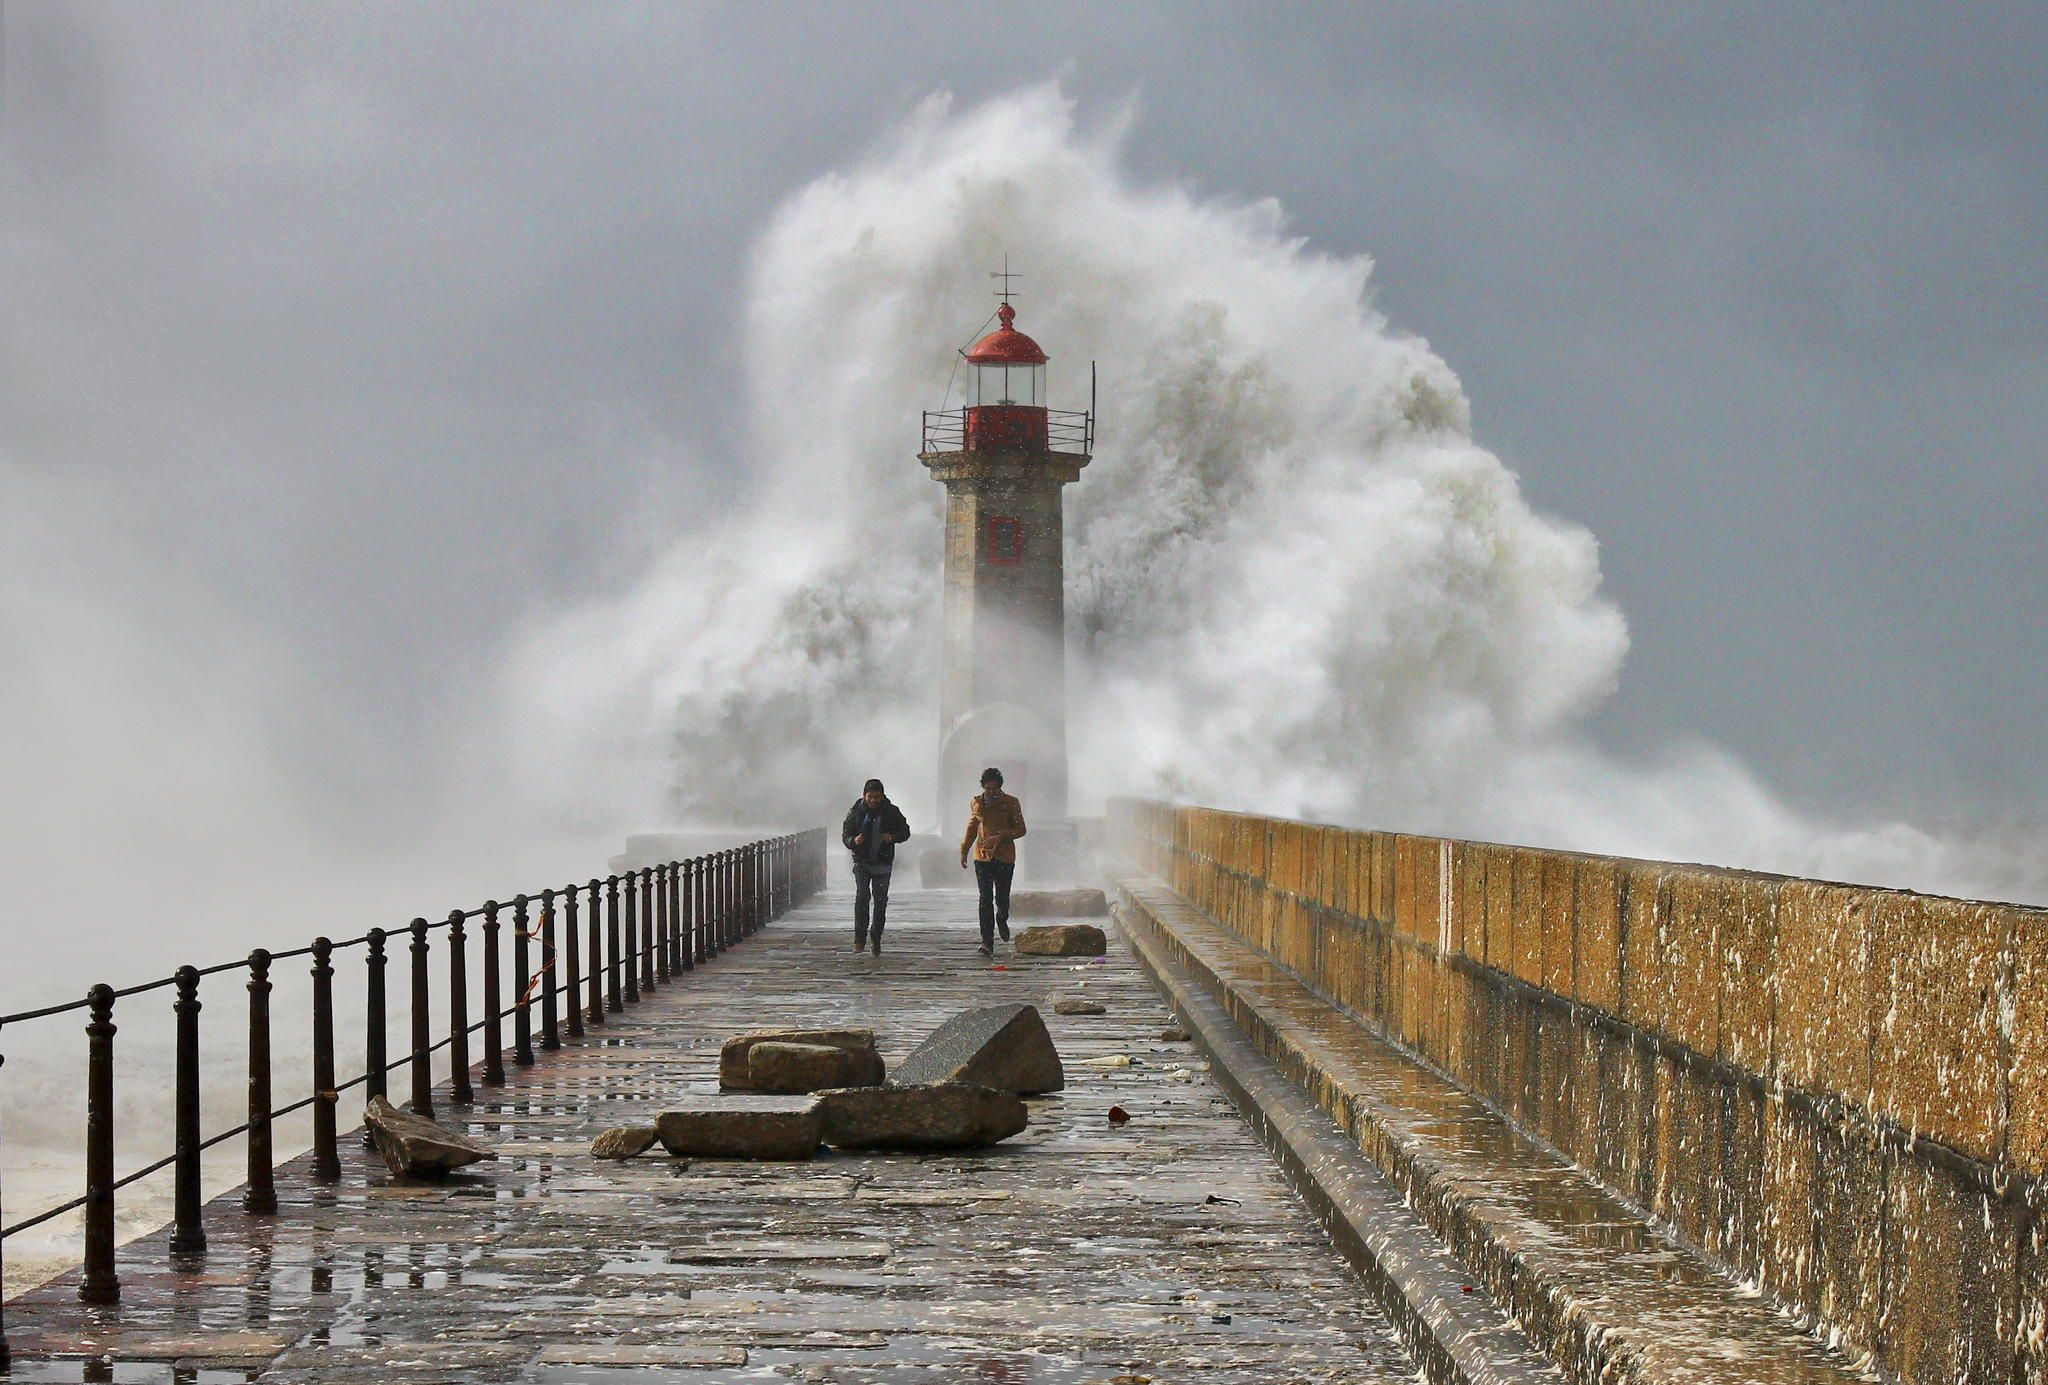 Hard Times by Veselin Malinov on 500px